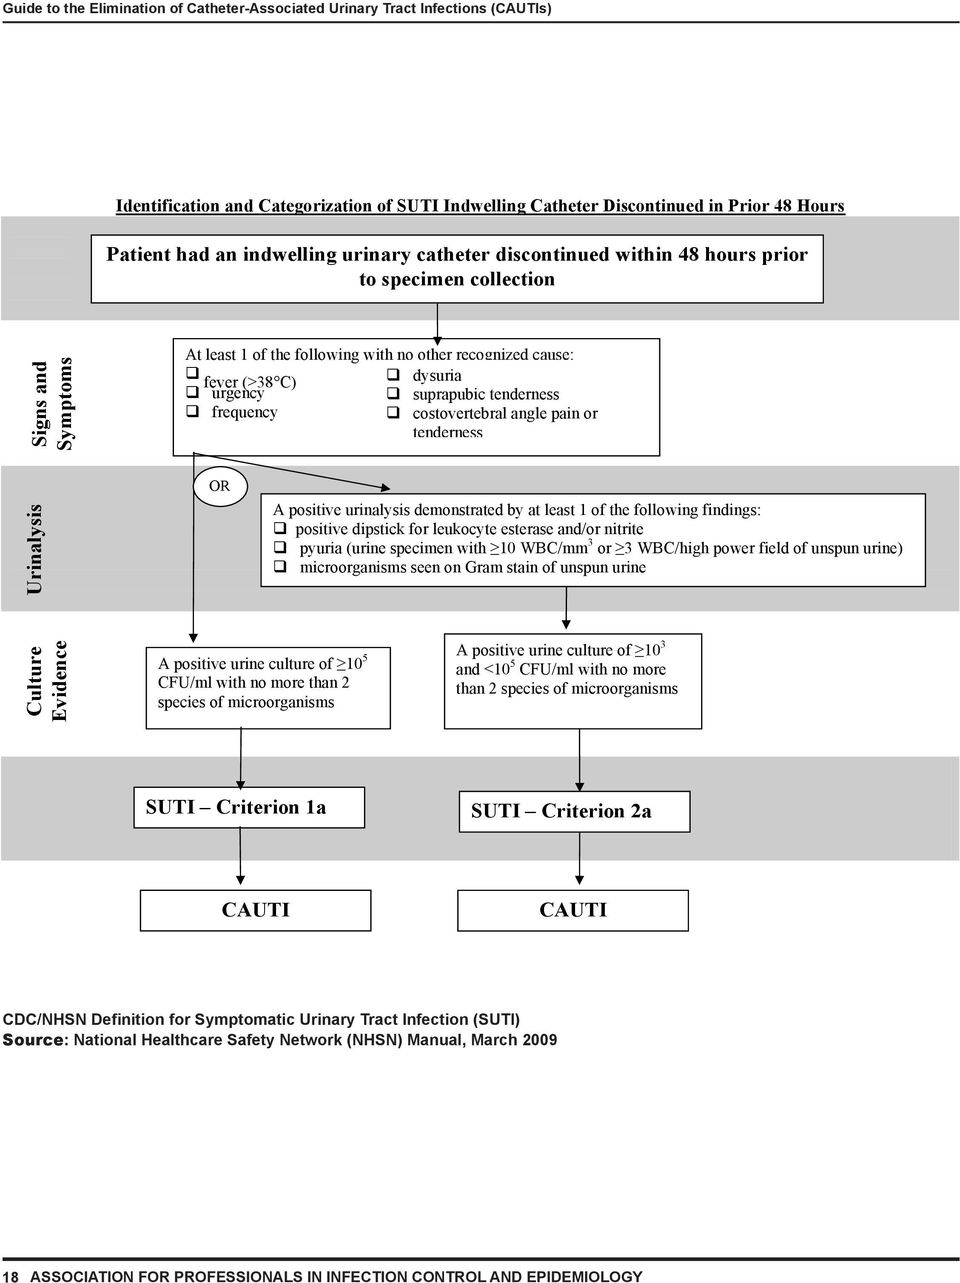 Guide to the Elimination of Catheter-Associated Urinary Tract